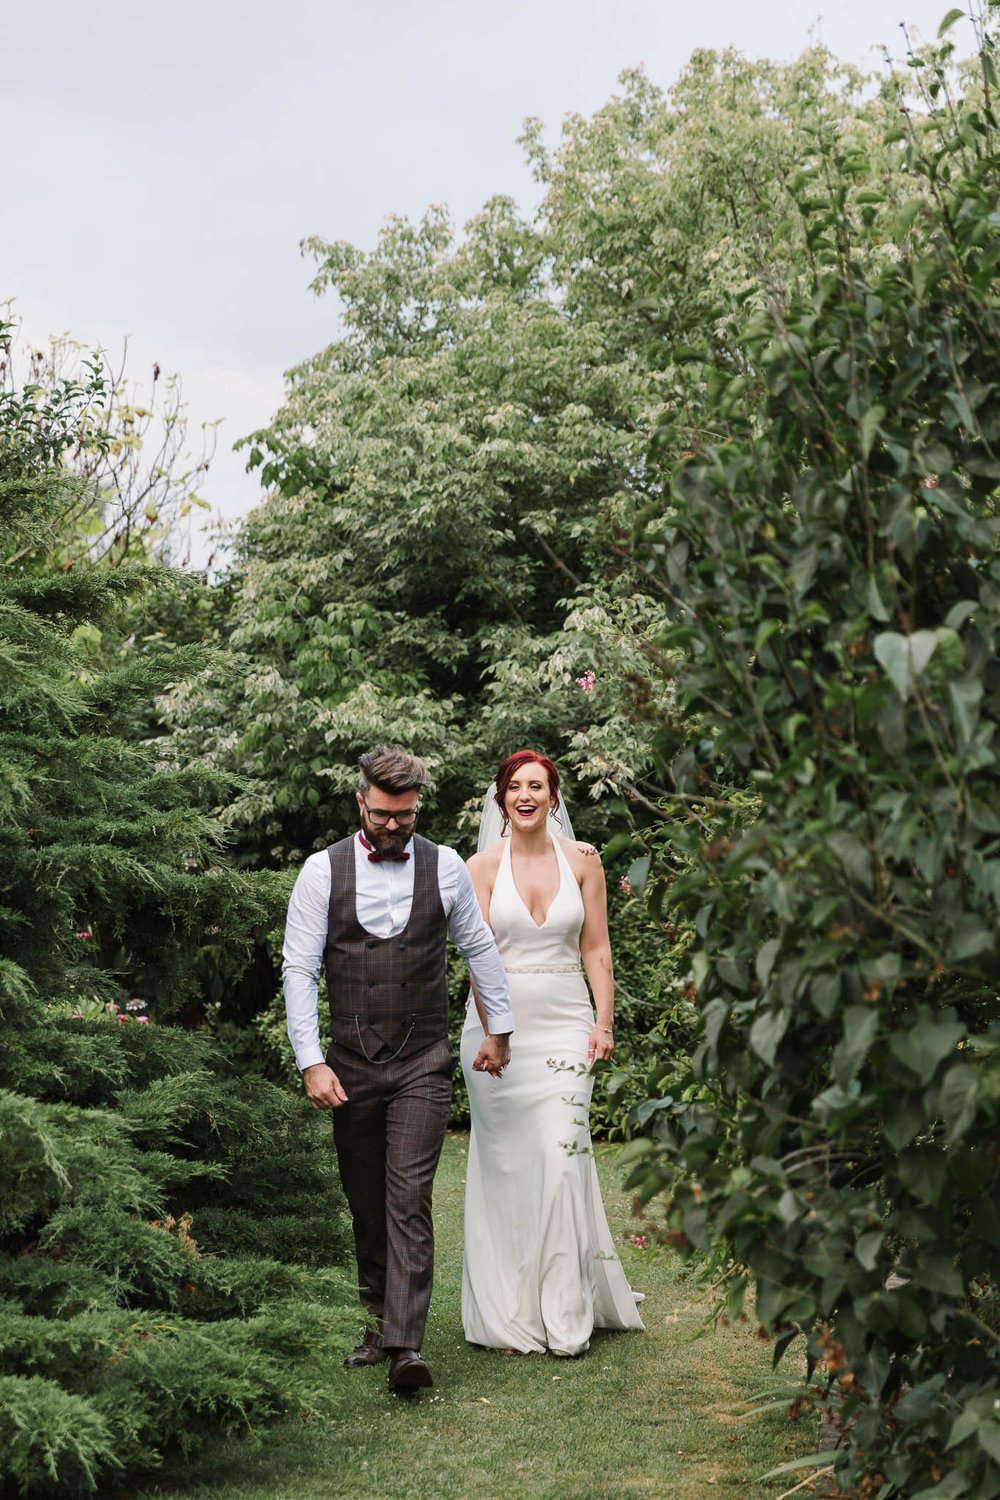 bride and groom walking through gardens - ENGLISH COUNTRY WEDDING AT SWARLING MANOR